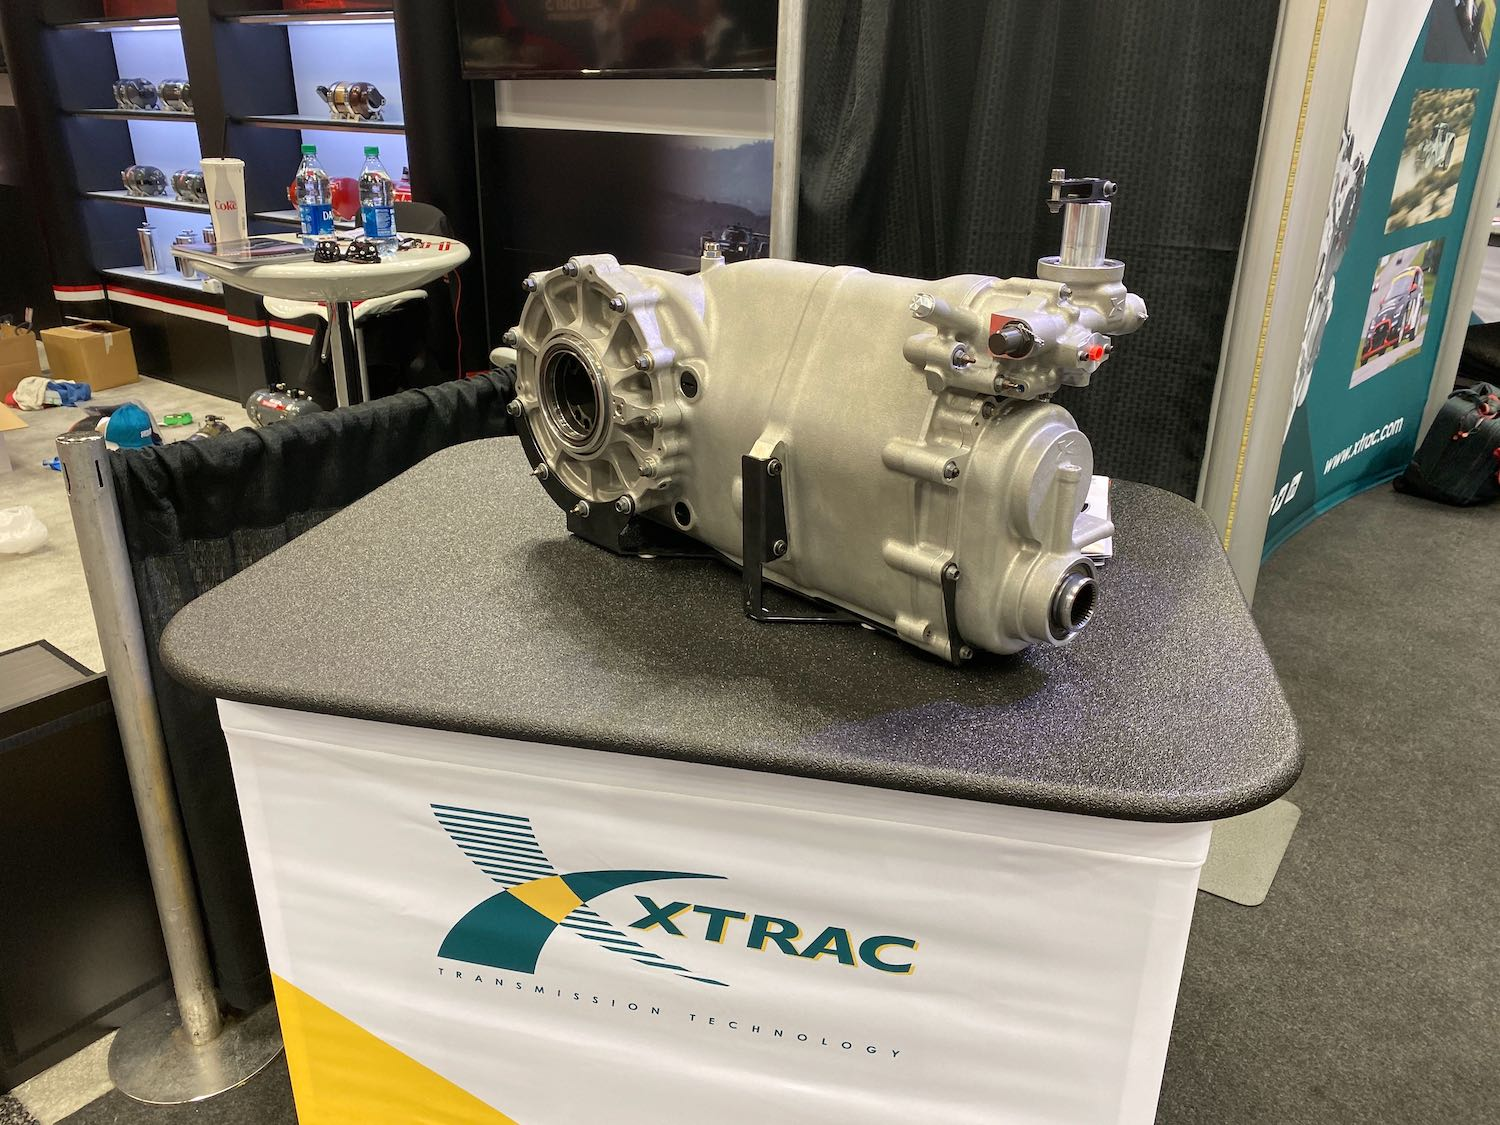 xtrac transaxle on display